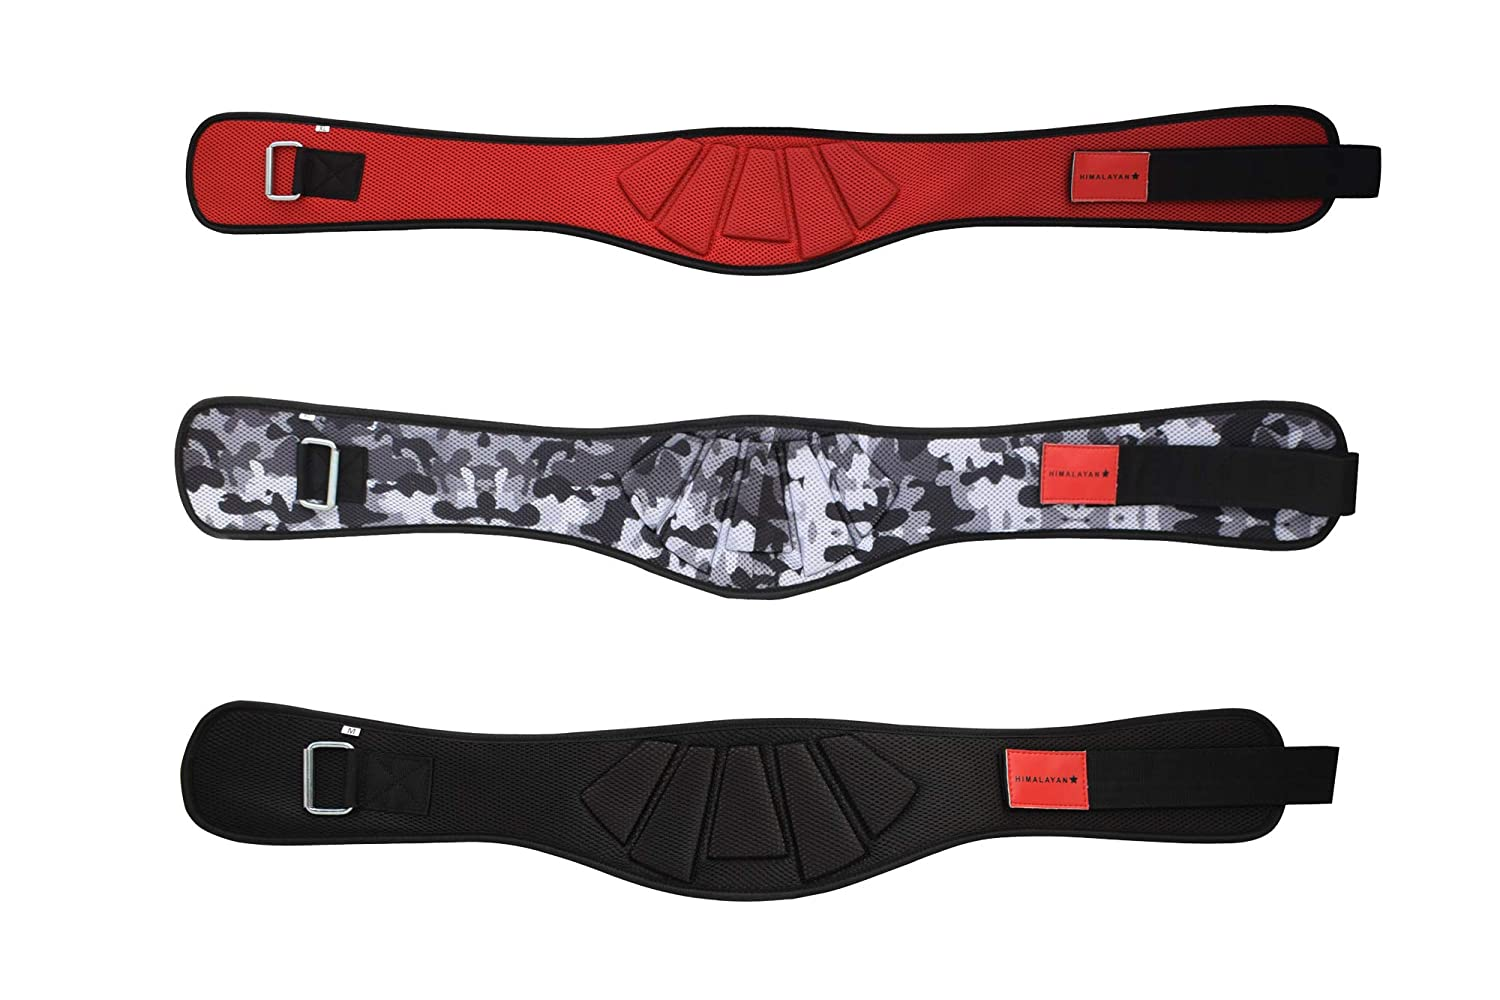 Himalayan Star Weight Lifting Belt Fitness Gym Workout Wide Back Support Brace Neoprene